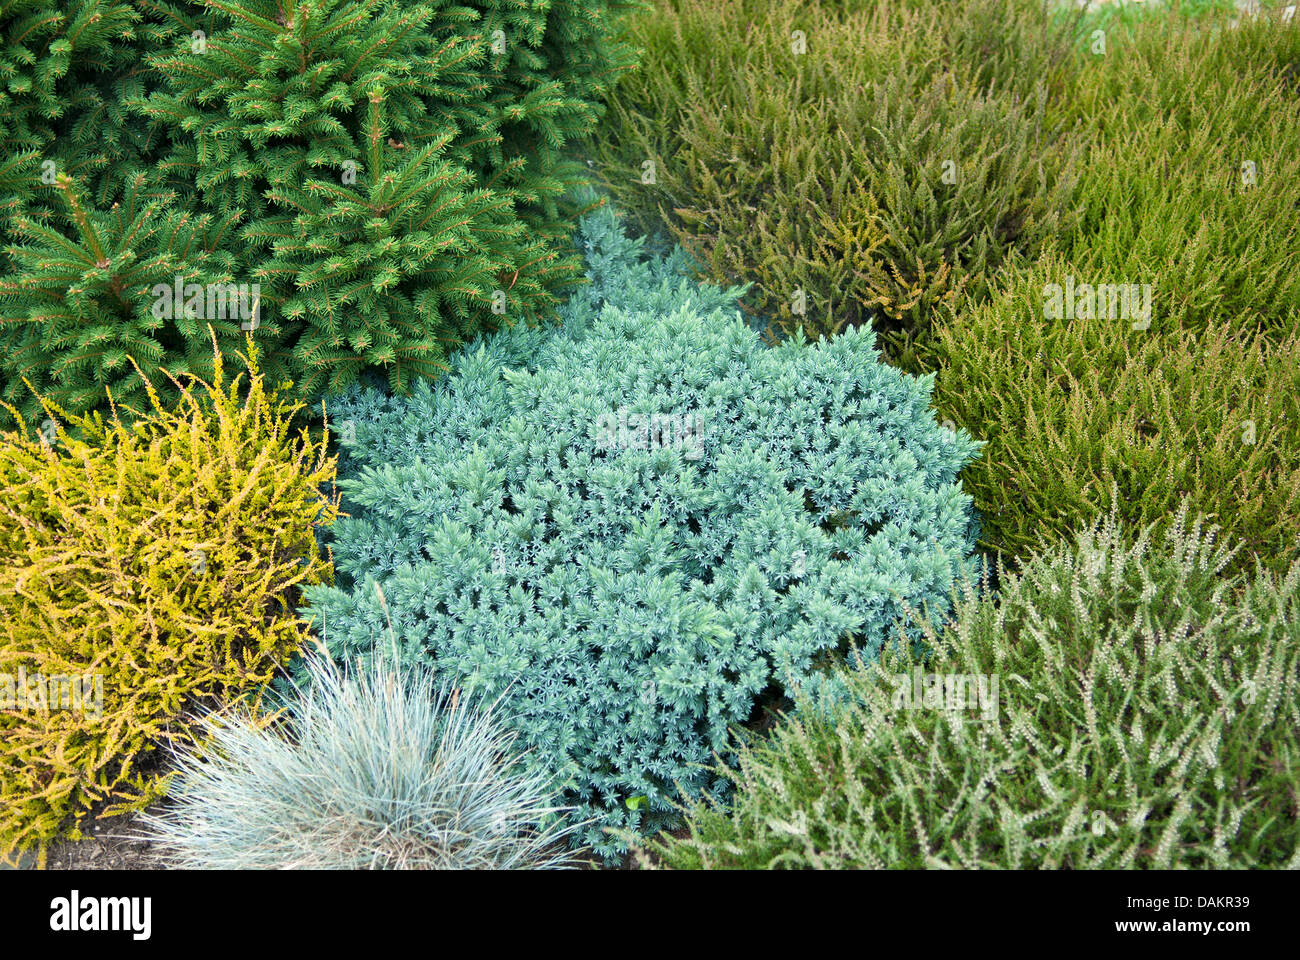 Blue Star Genévrier (Juniperus squamata 'Blue star', Juniperus squamata Blue Star), le cultivar Blue Photo Stock